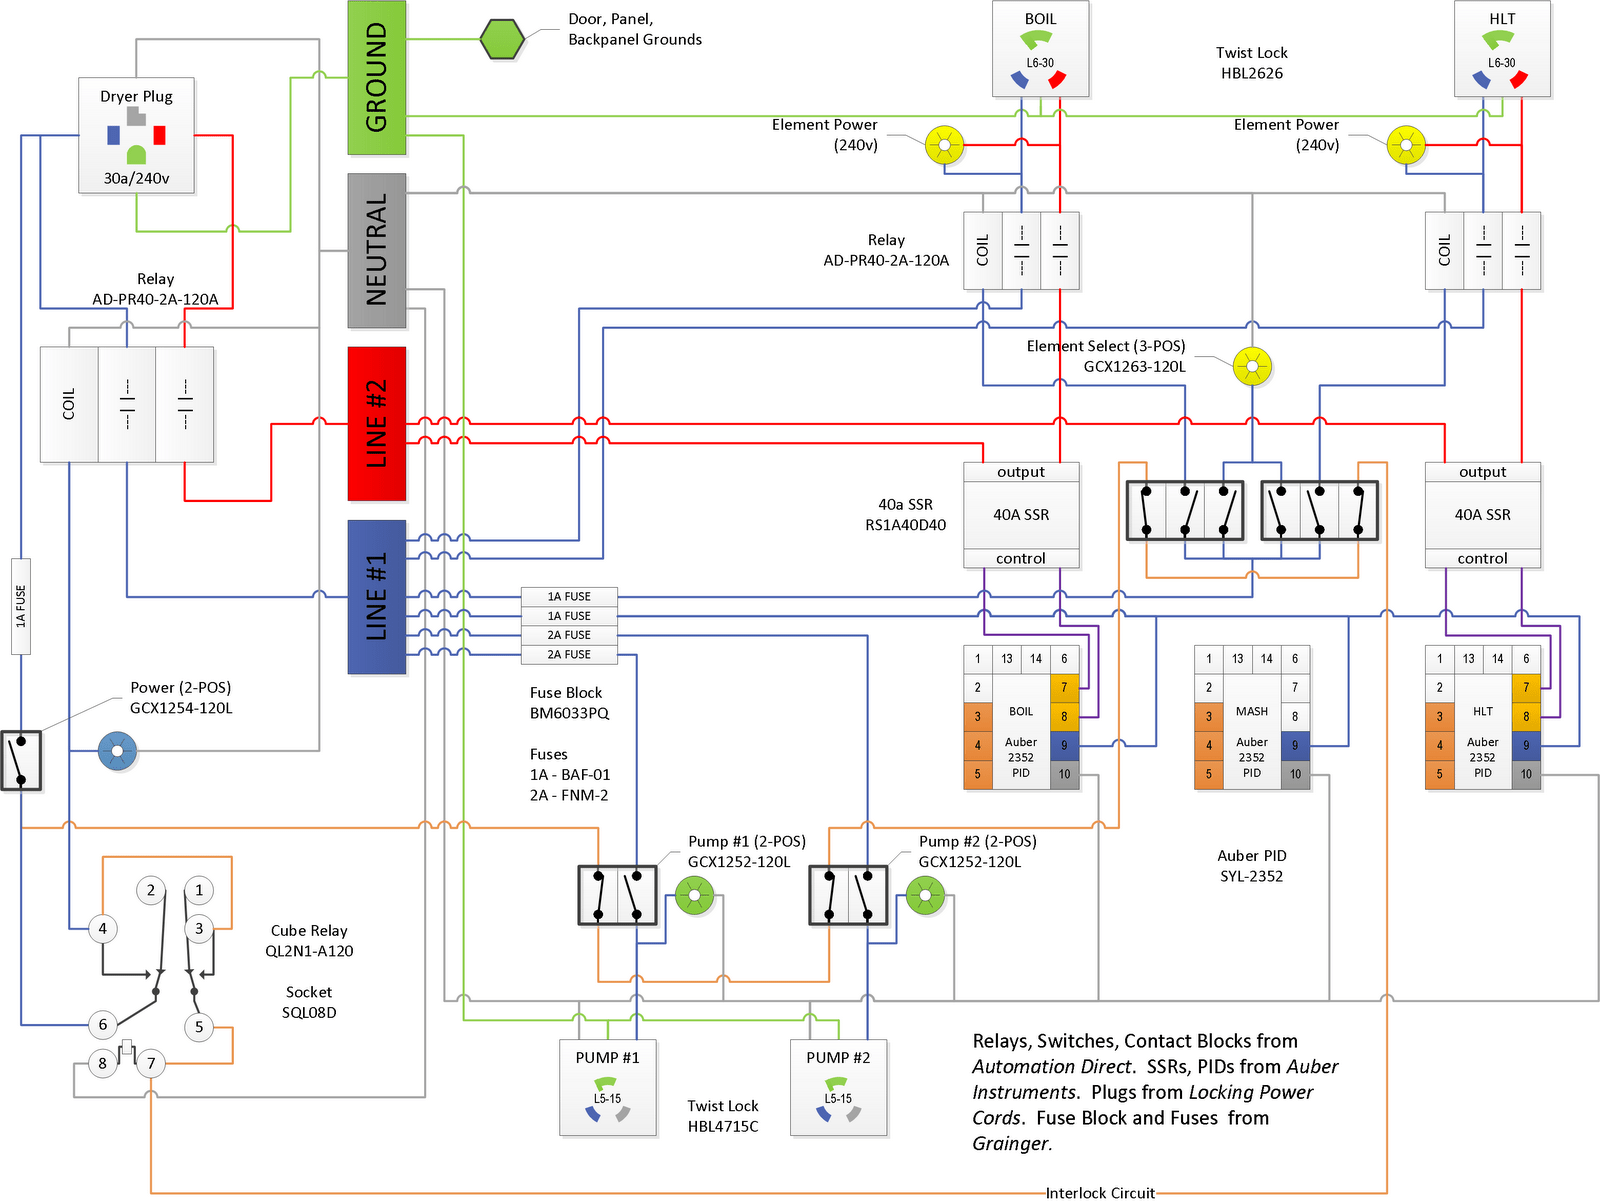 Schematic v6 electric brewery wiring diagram electric brewery wiring diagram at webbmarketing.co